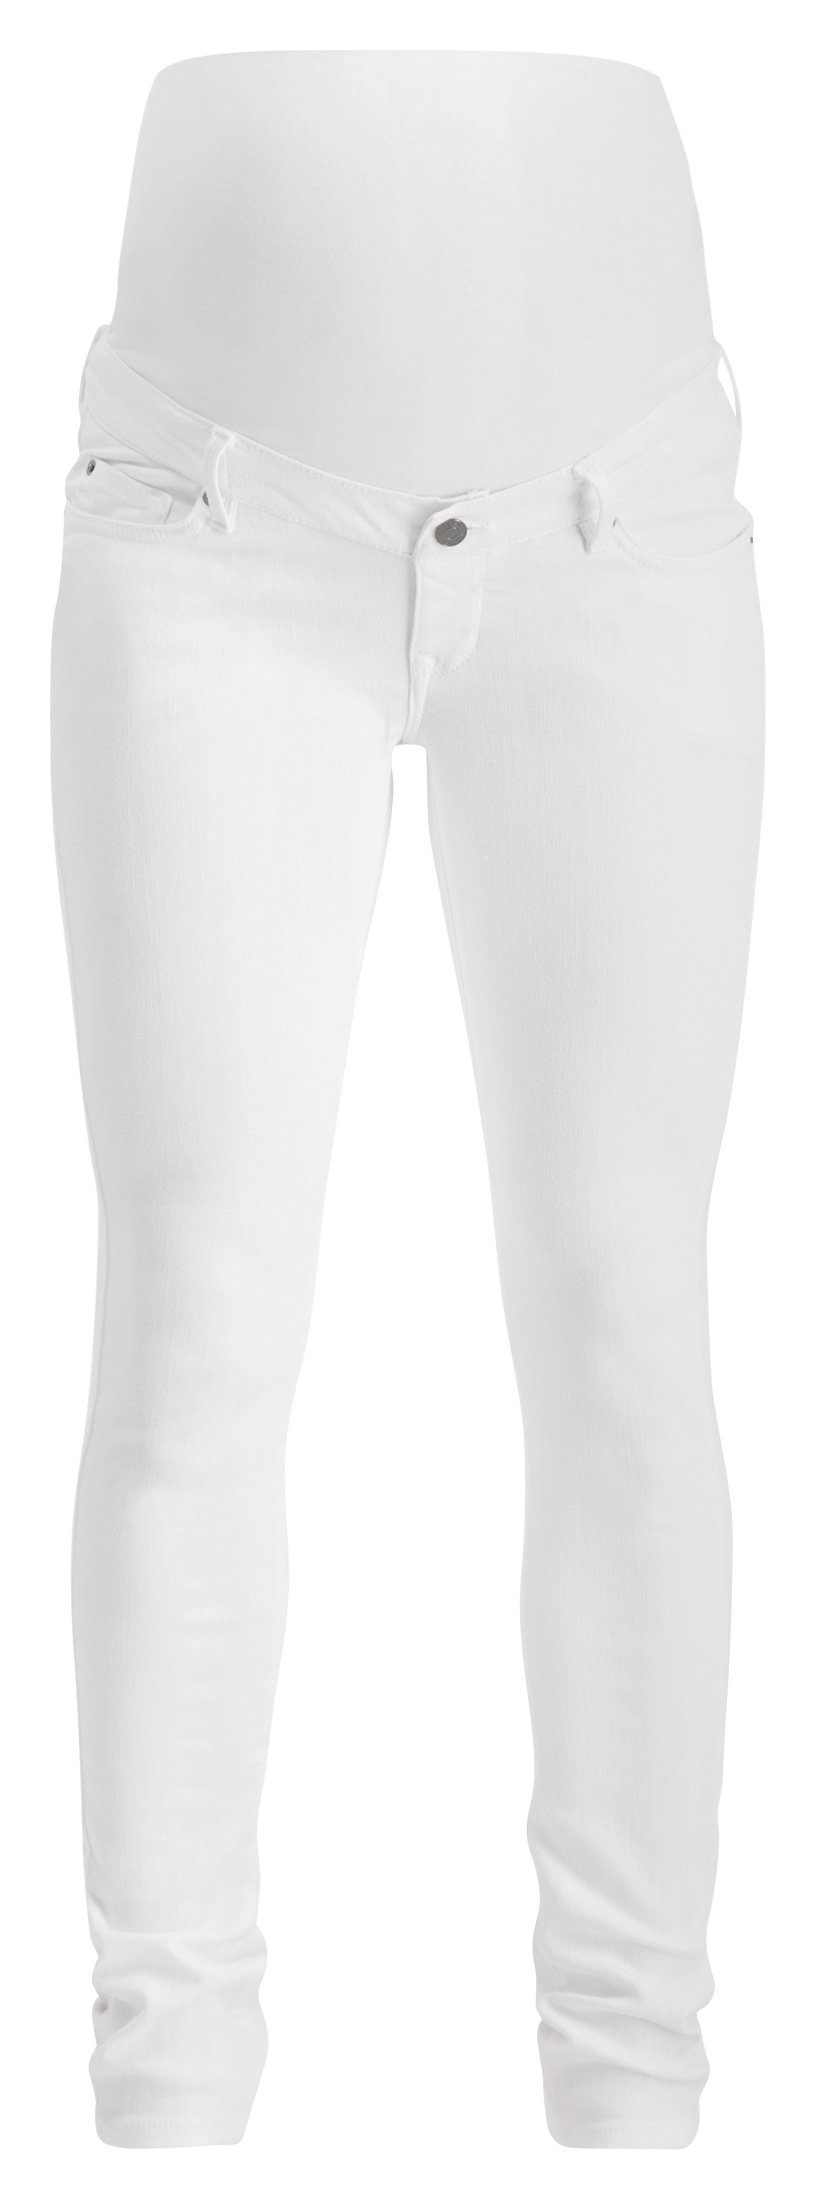 Noppies Skinny trousers Romy – Maternity clothes Every Day White